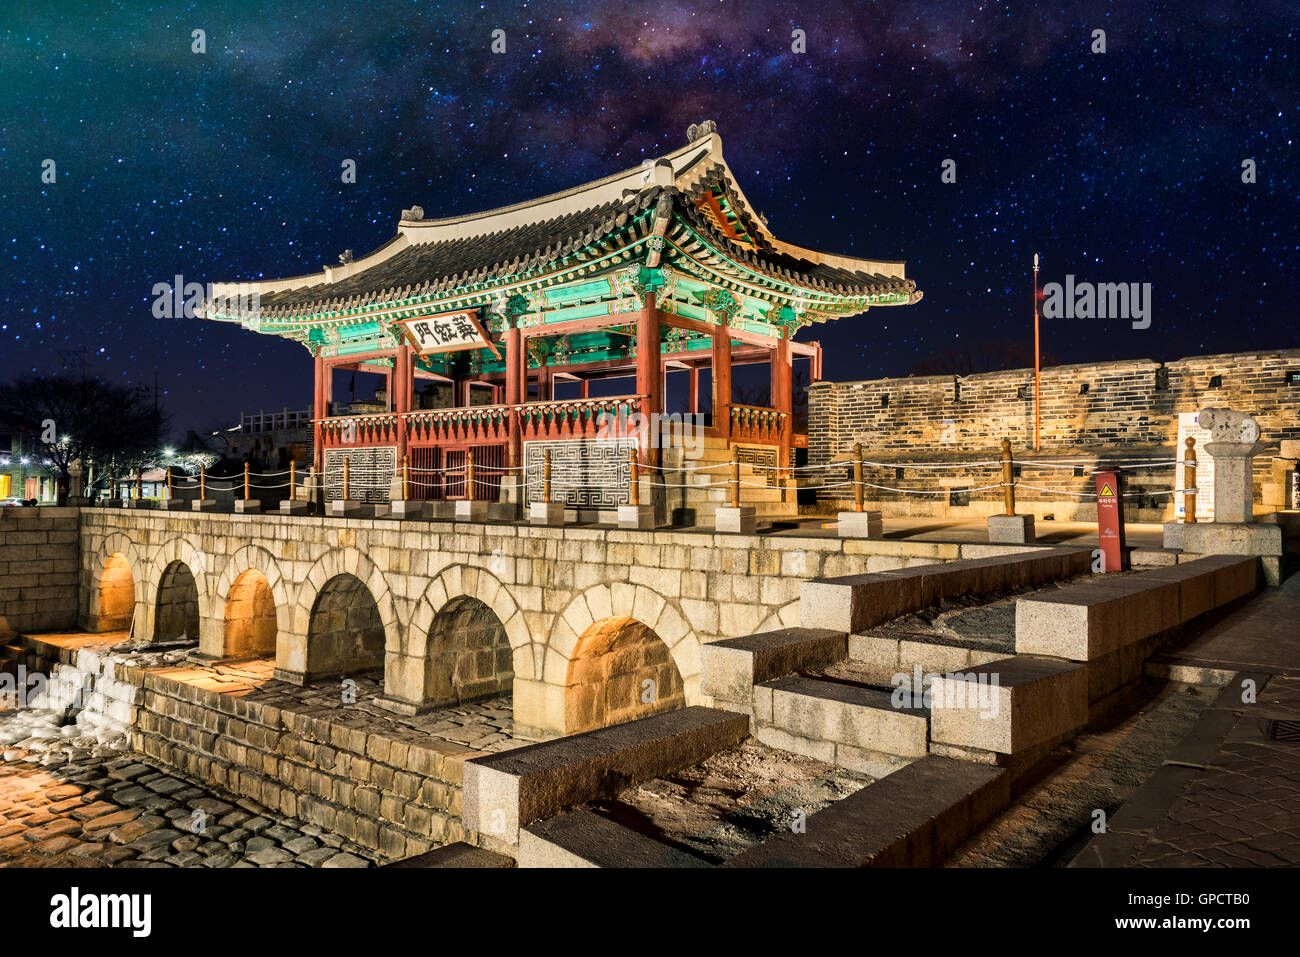 Hwaseong Fortressand Milky Way Galaxy in Seoul, South Korea. - Stock Image